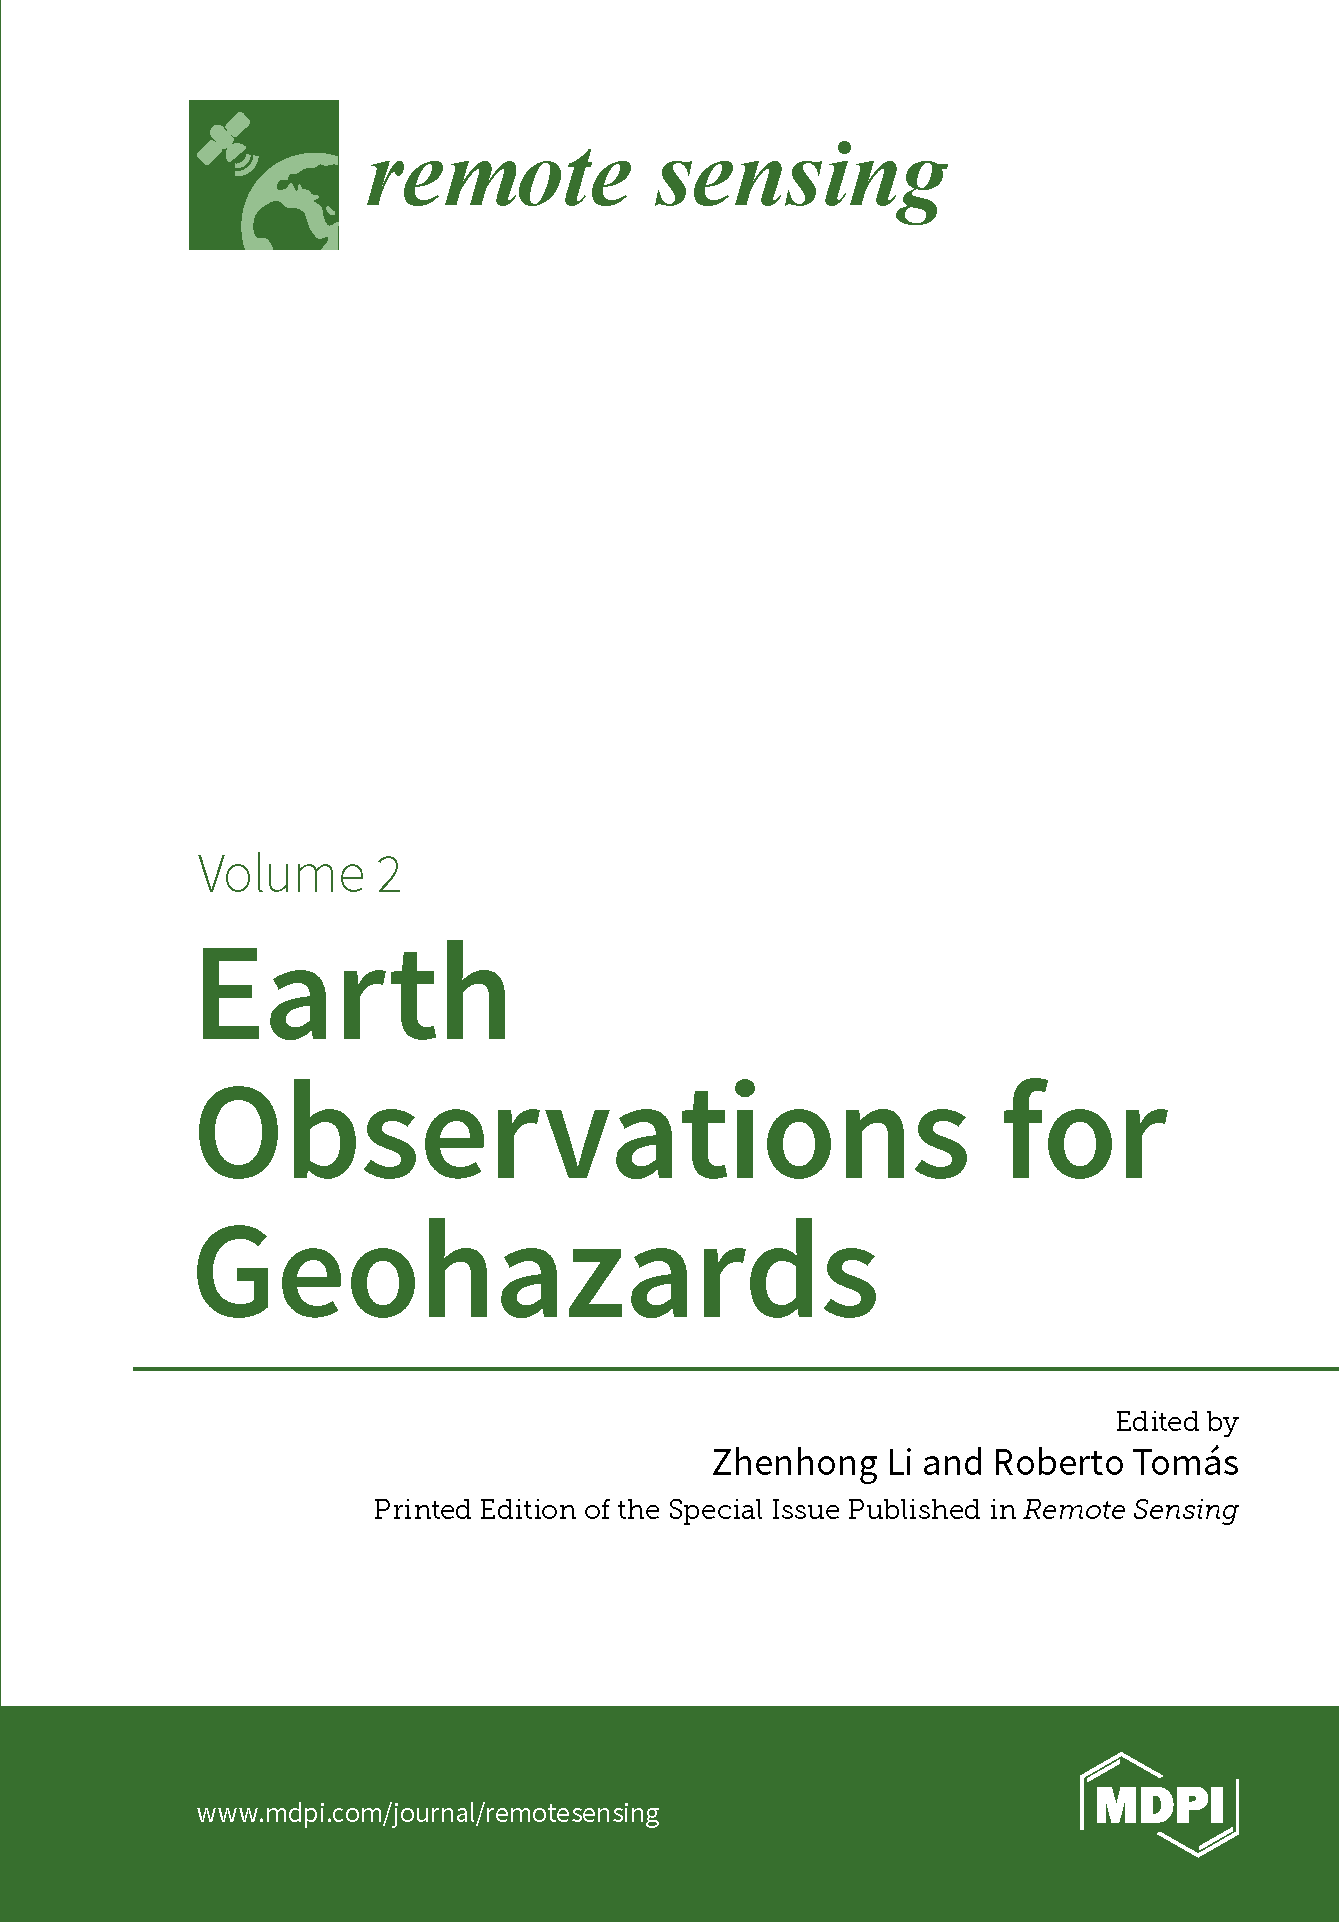 Earth Observations for Geohazards